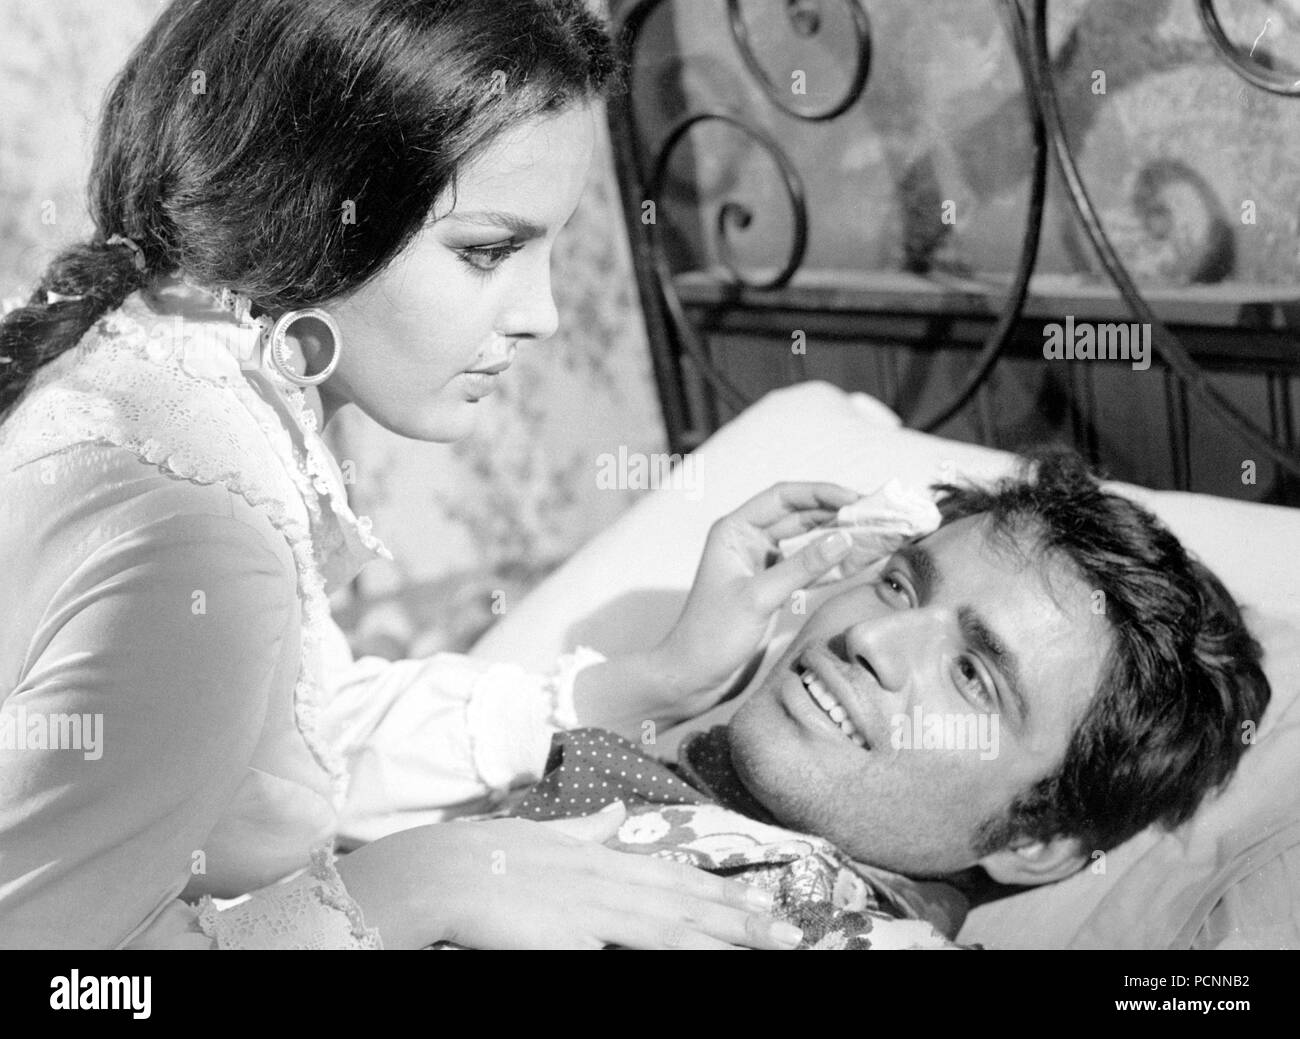 agata fiori, antonio sabato, one dollar too many, 1968 - Stock Image